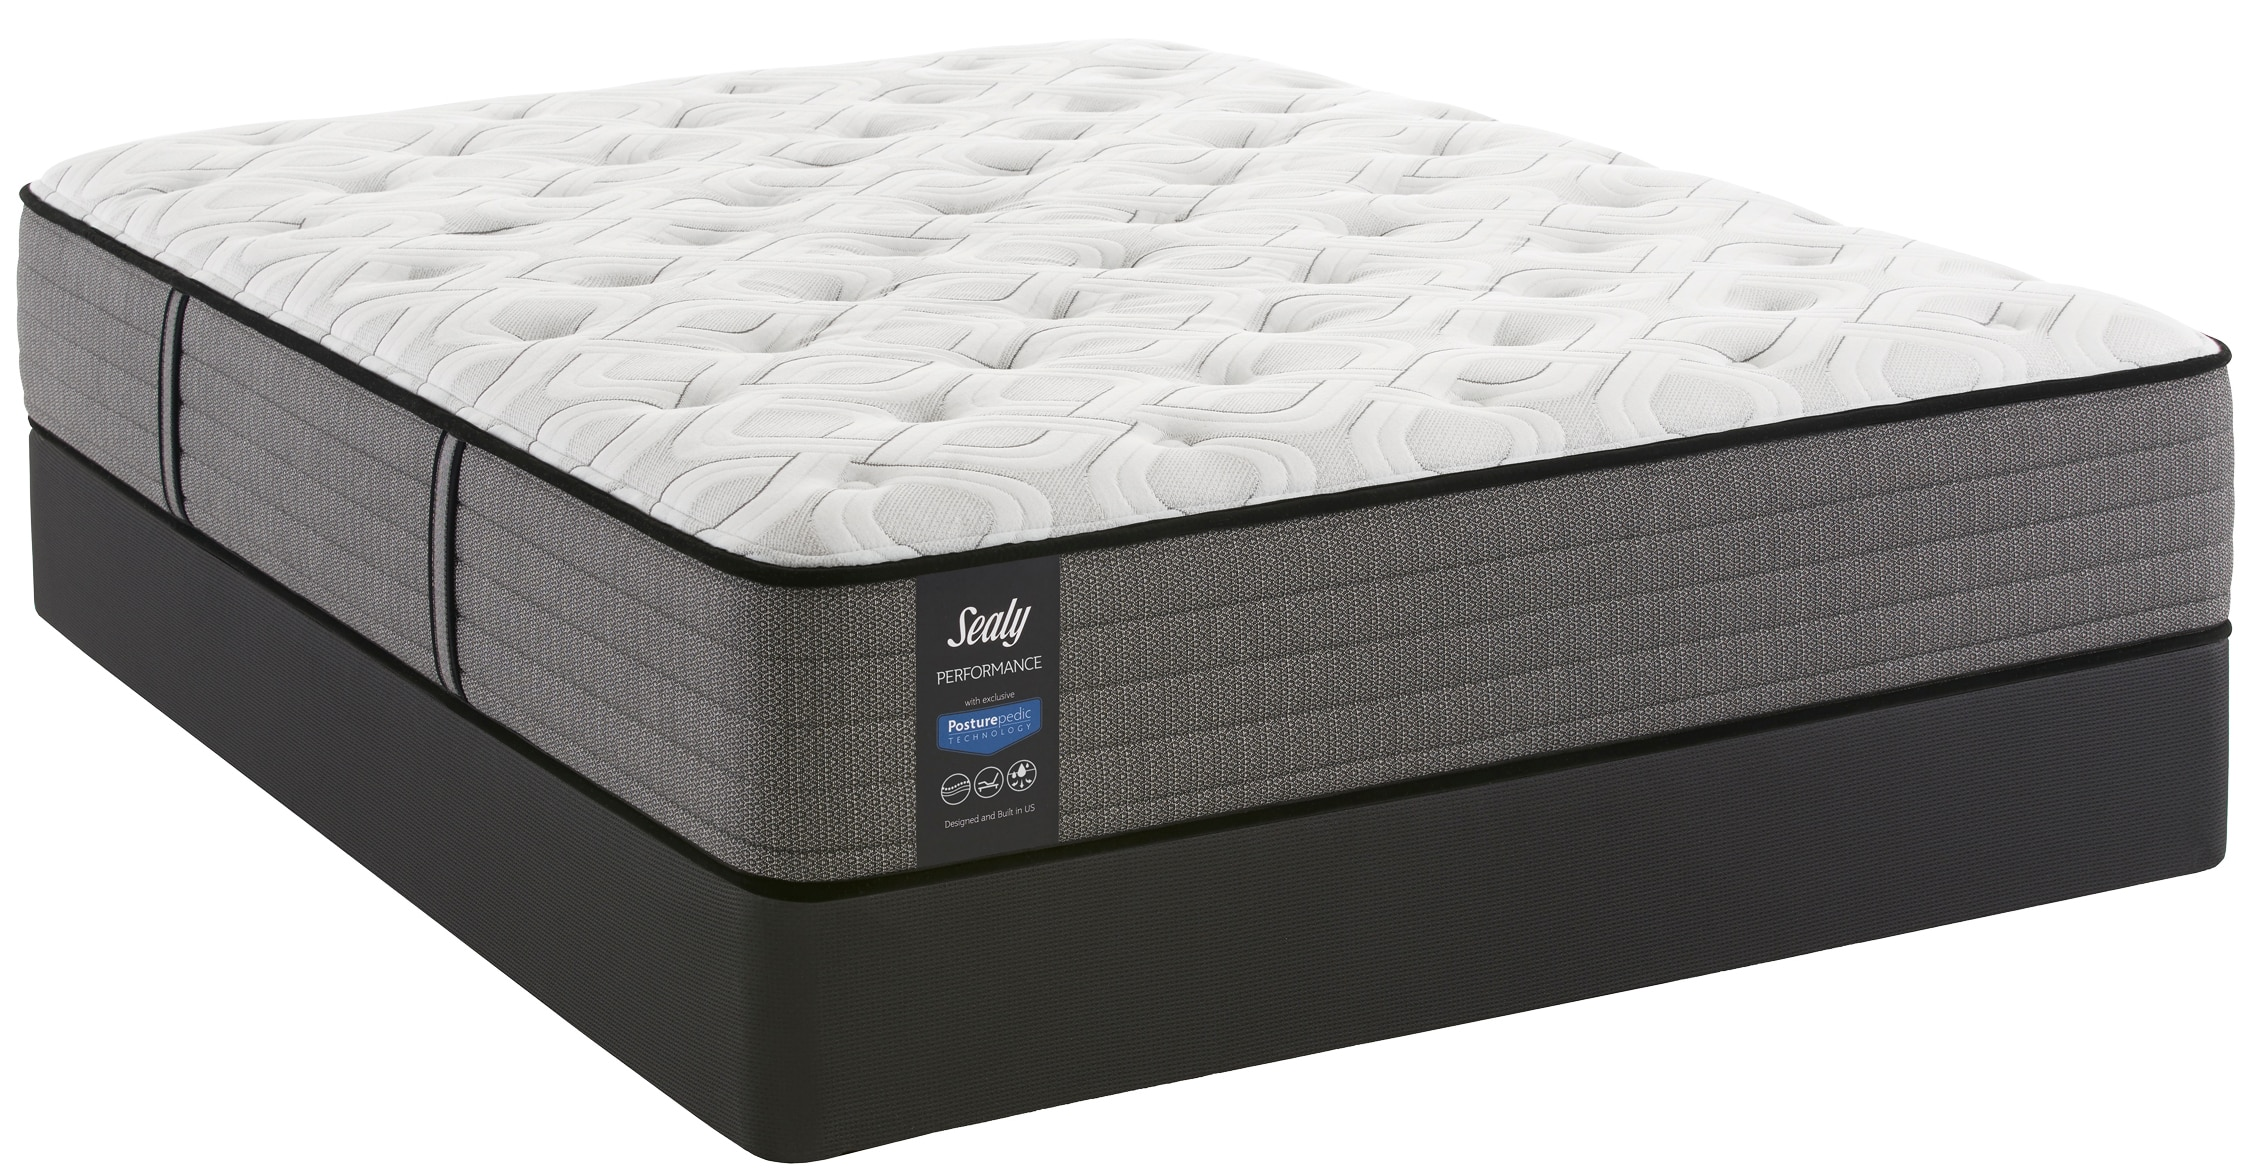 Morning Dove Firm California King Mattress and Boxspring Set